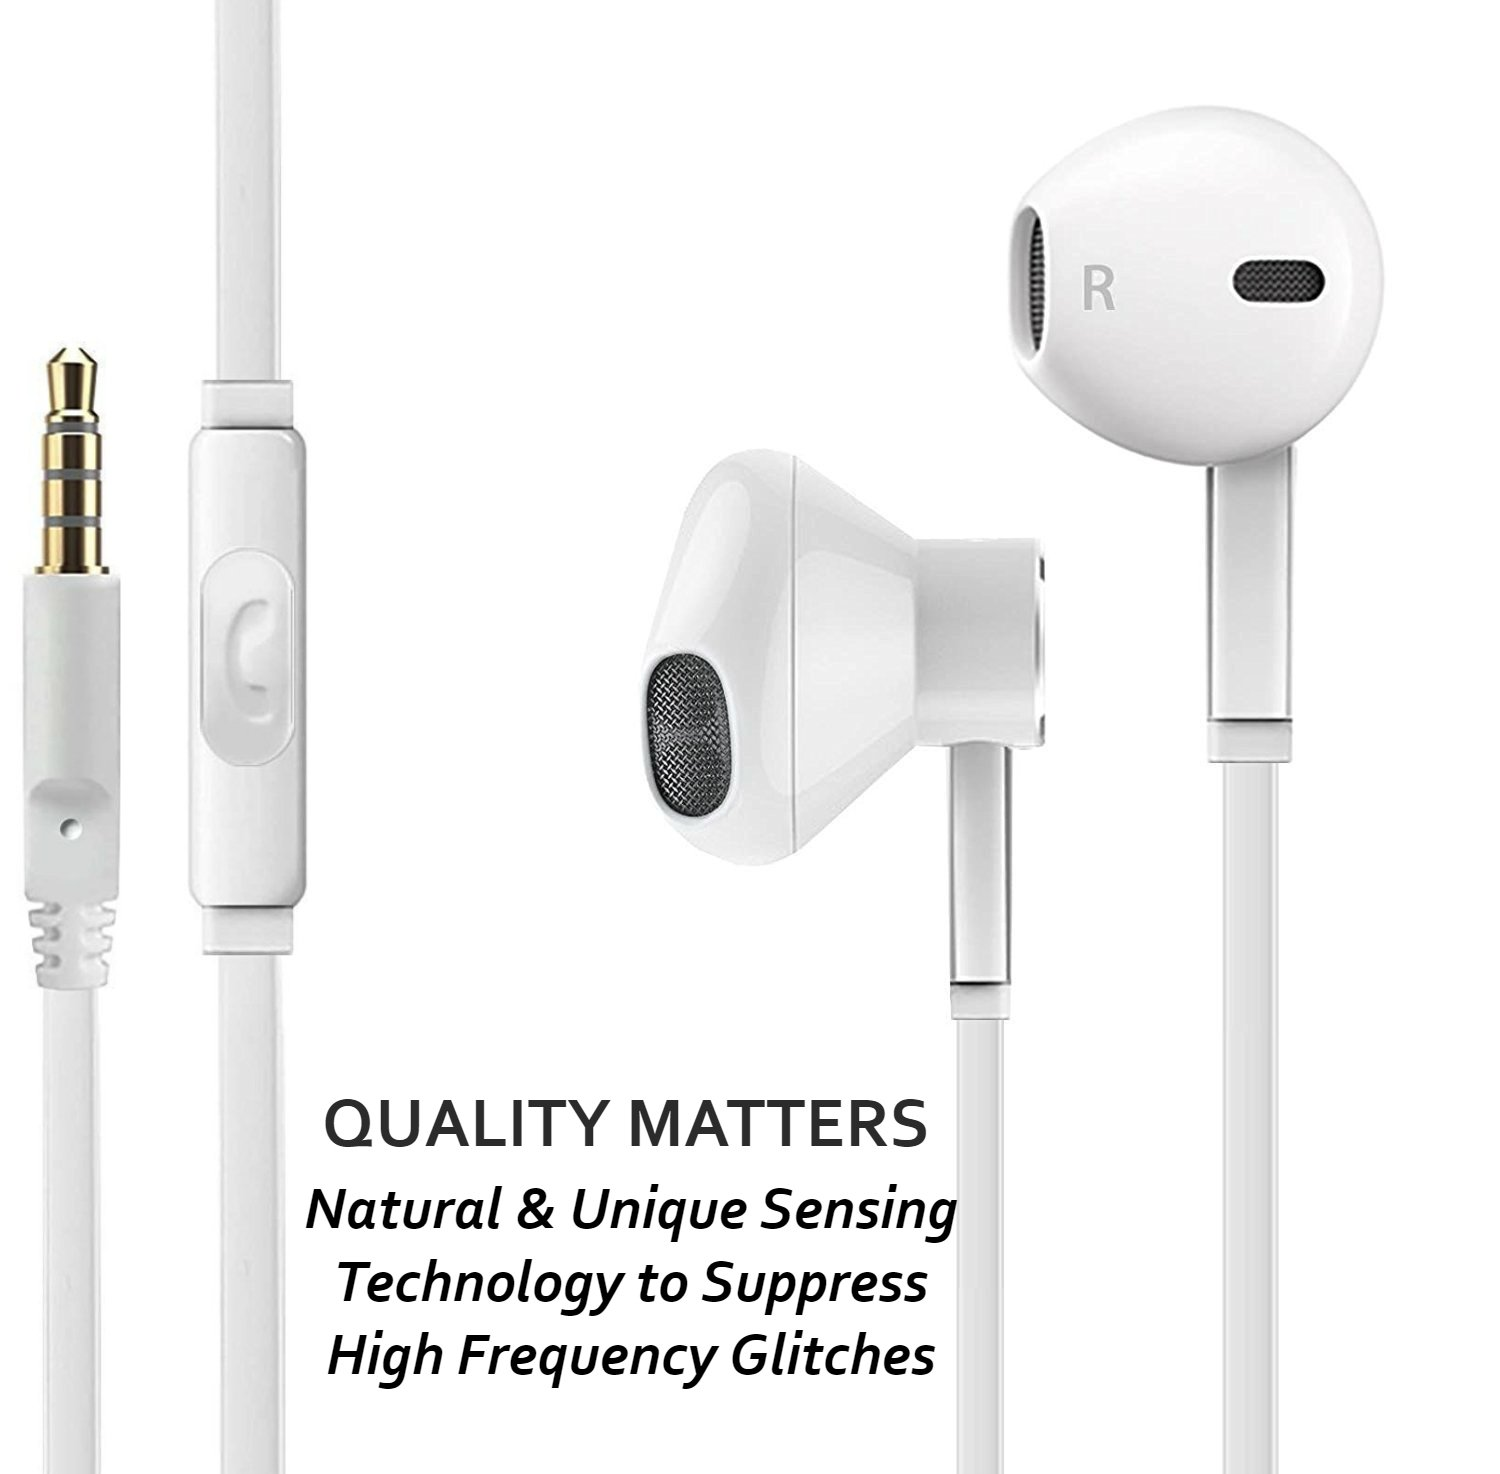 Headphones with Microphone, Certified PowerBoost In-Ear 3.5mm Noise Cancelling Sport Stereo Earphones Headset for iPhone iPad iPod Laptop Tablet Android LG HTC Smartphones (White) 3 PACK by Power Boost (Image #3)